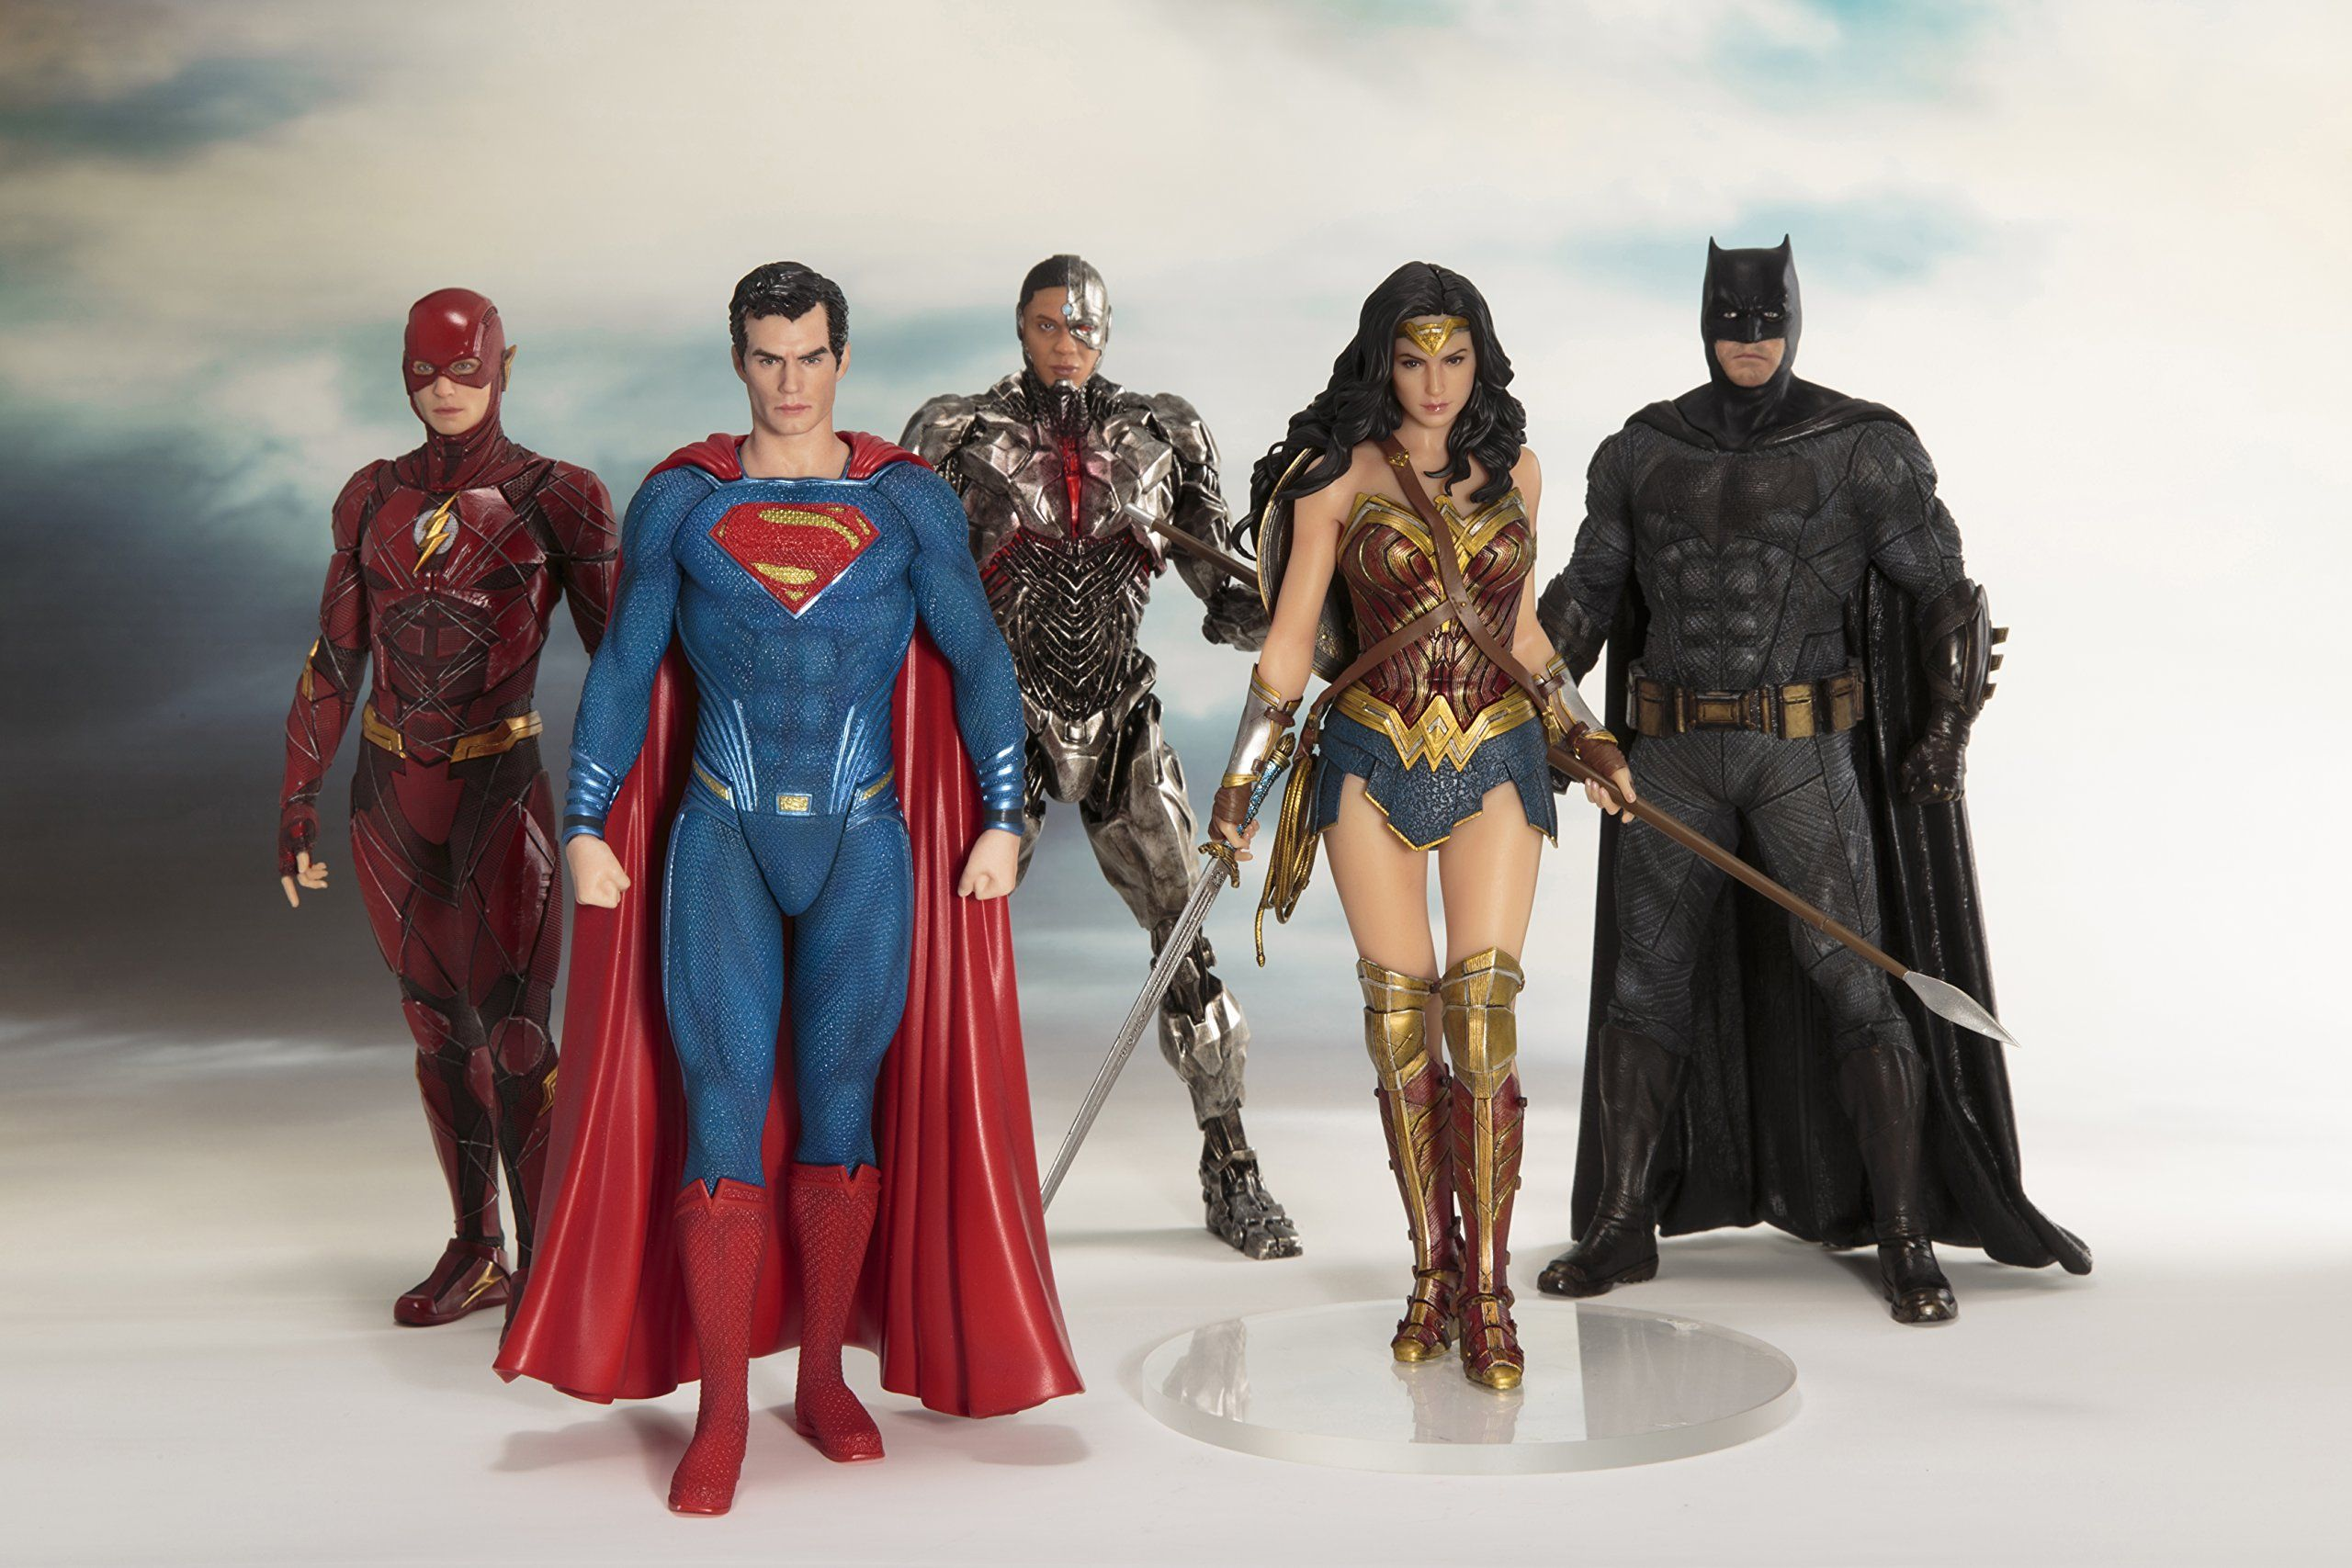 Kotobukiya Justice League Movie Wonder Woman Artfx Statue Check Out This Great Product This Is An Affilia New Justice League Wonder Woman Justice League